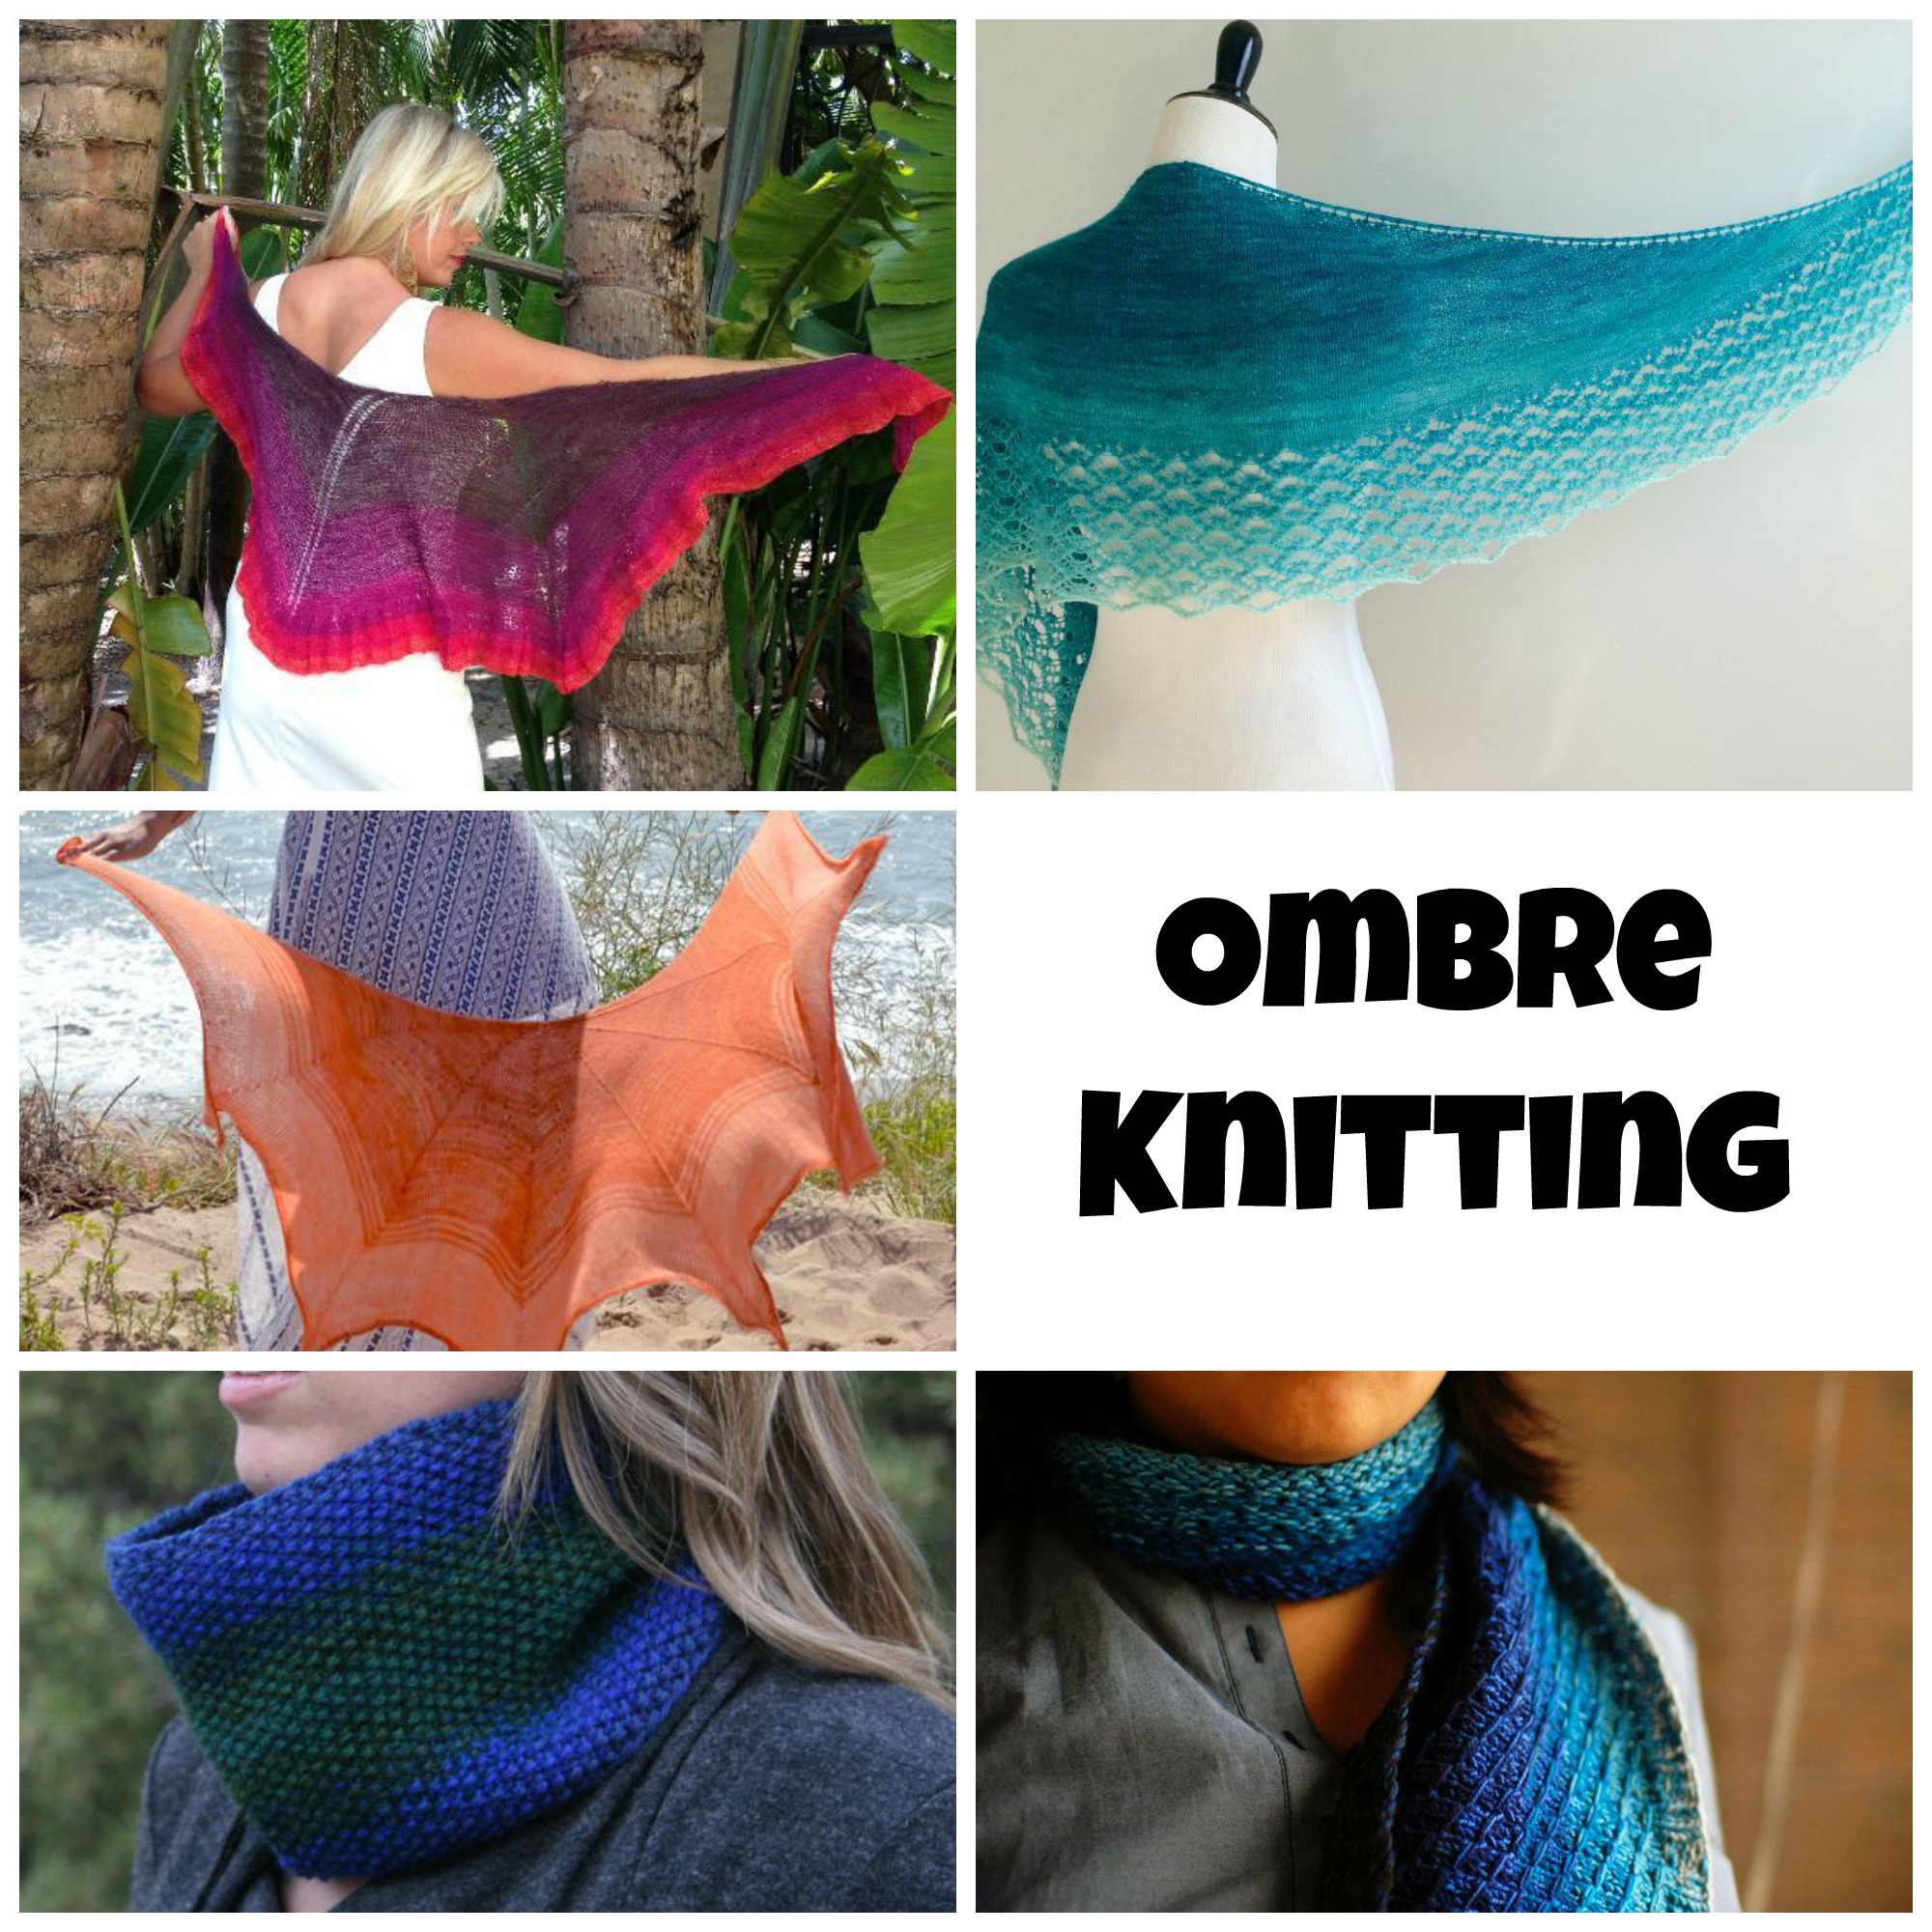 Ombre Knitting